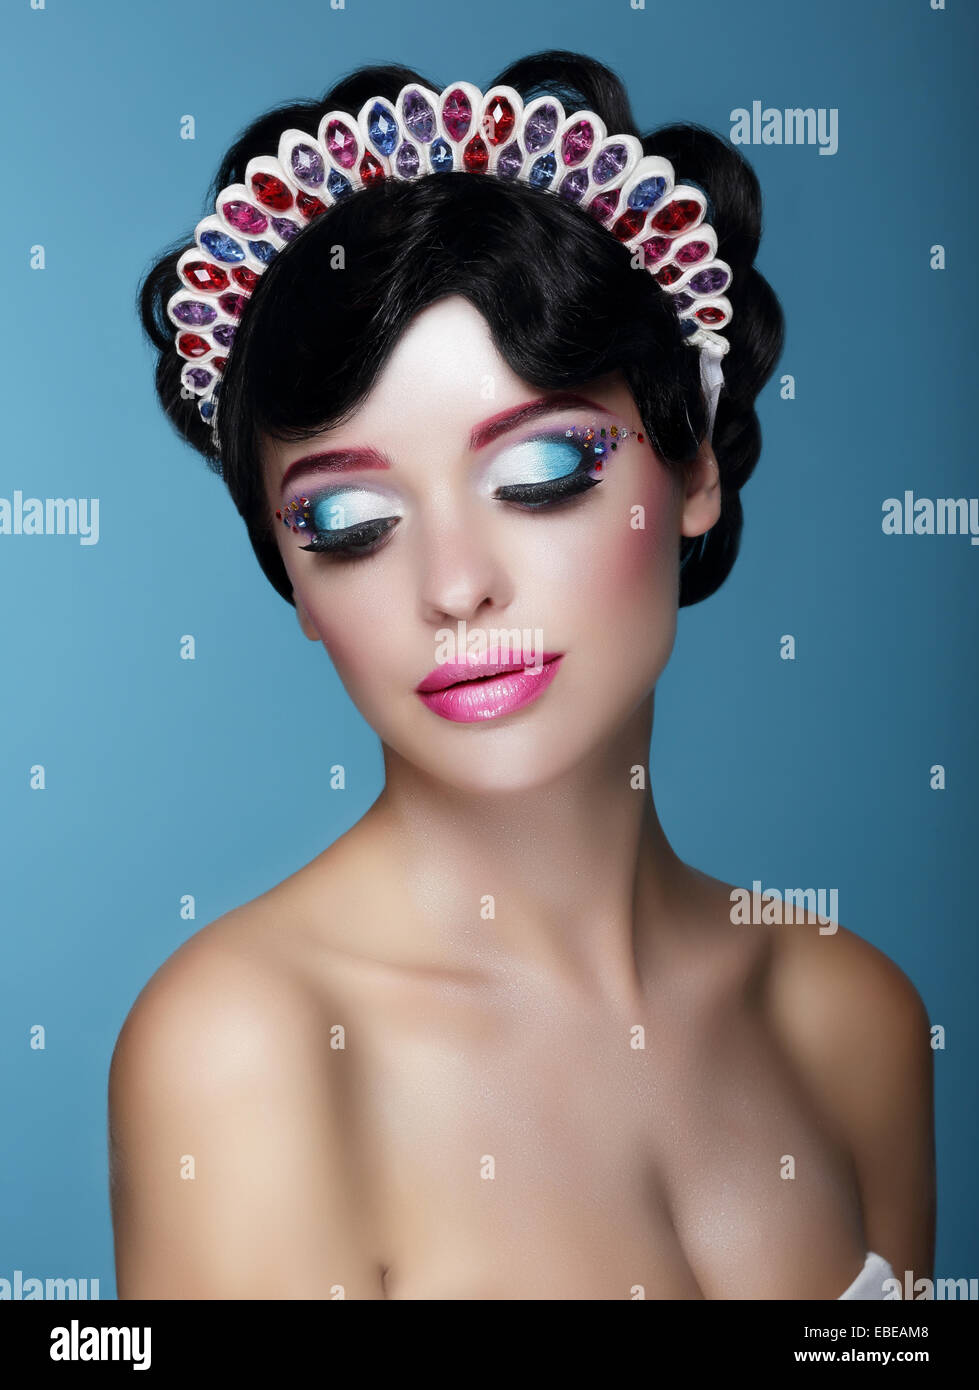 Luxurious Dreamy Female with Bright Makeup and Art Diadem - Stock Image